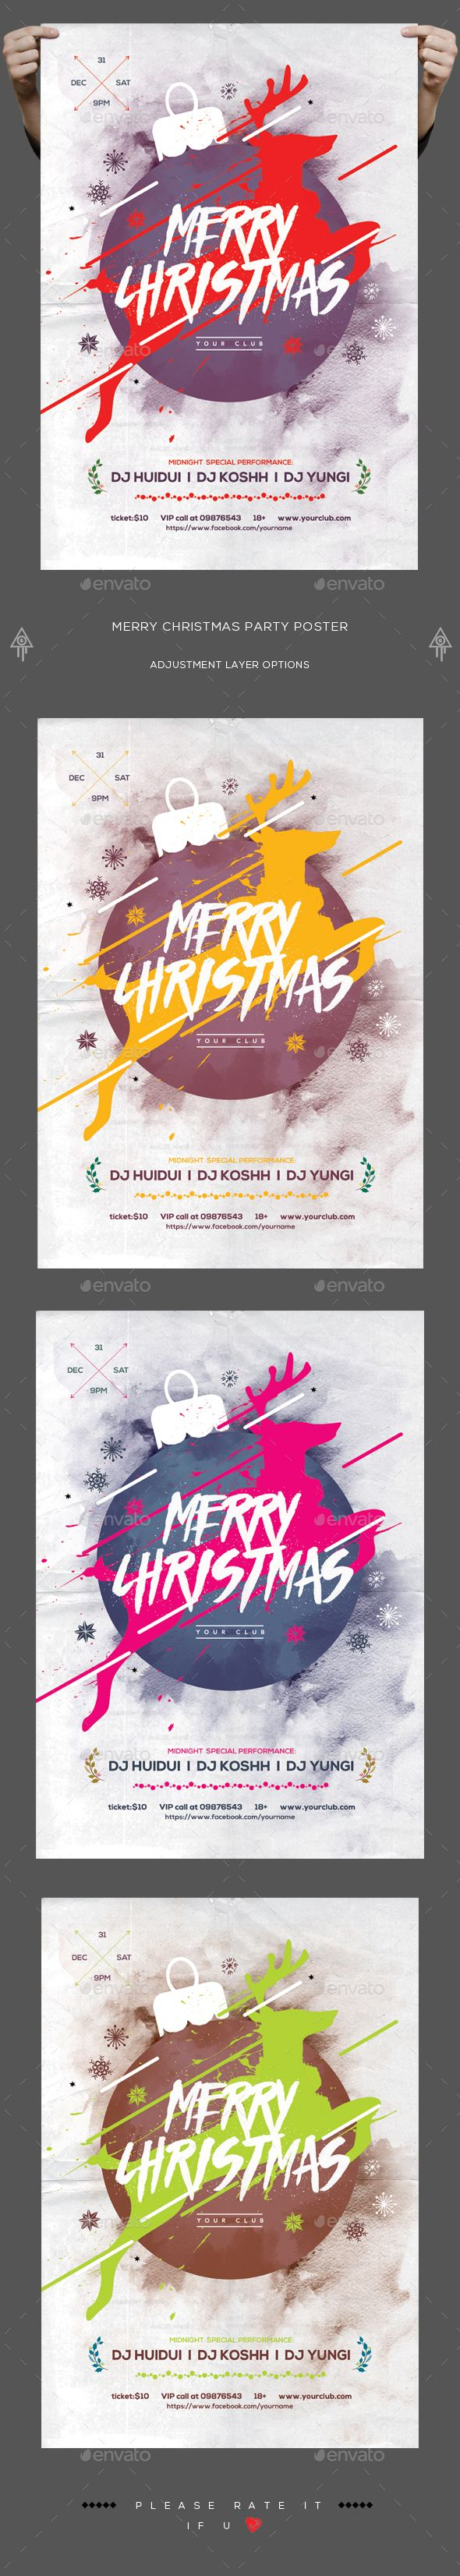 Merry Christmas Party Poster  — PSD Template #inspiration #christmas party #nye • Download ➝ https://graphicriver.net/item/merry-christmas-party-poster/18622459?ref=pxcr